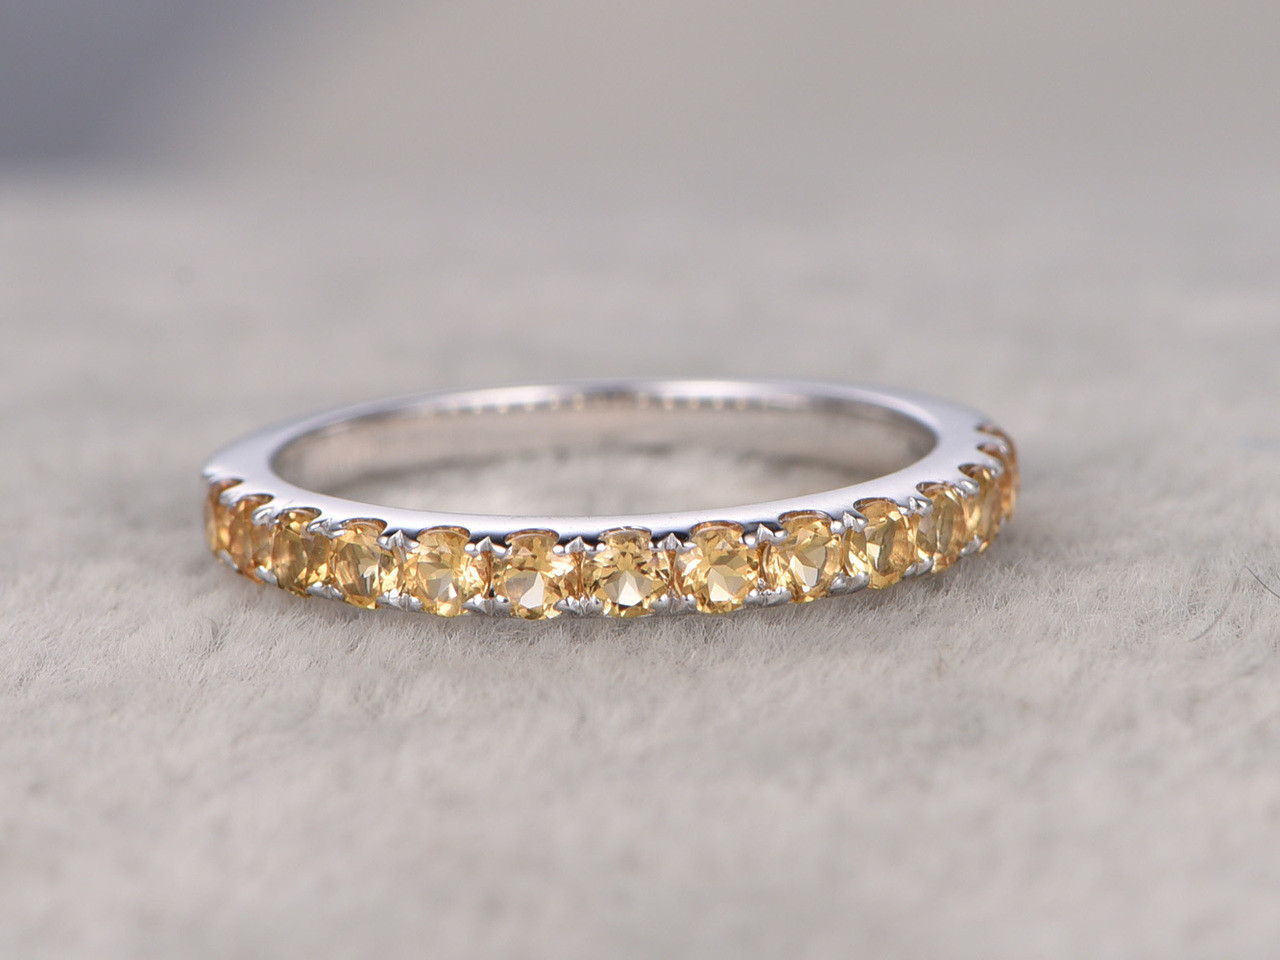 eternity half large zirconia p cubic ring band gold context yellow beaverbrooks bands